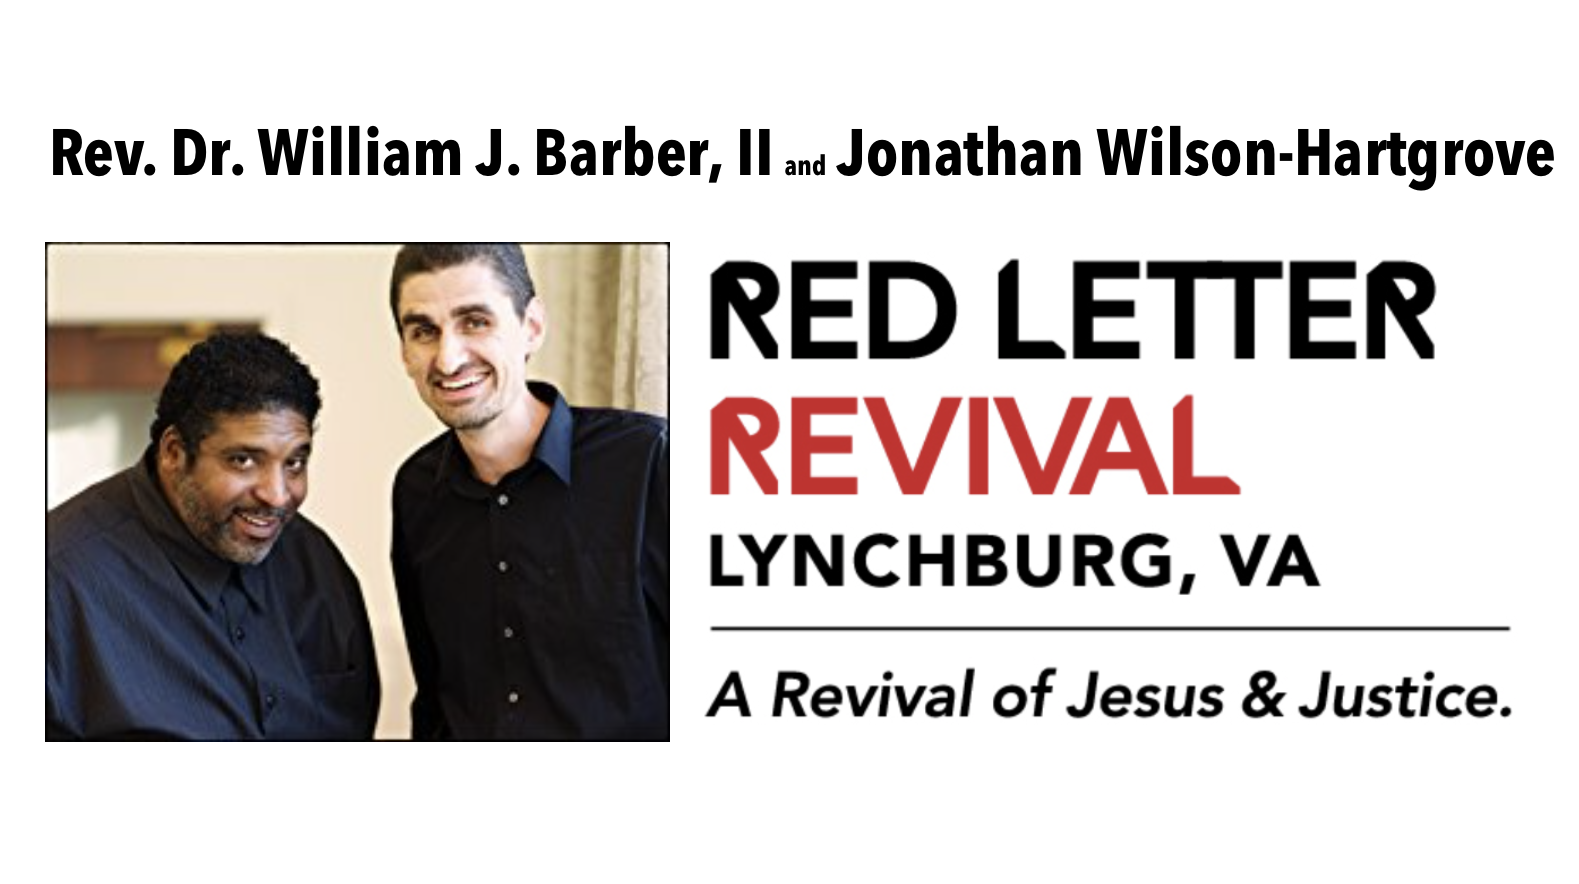 Red Letter Revival.Rev Dr William J Barber Ii And Jonathan Wilson Hartgrove